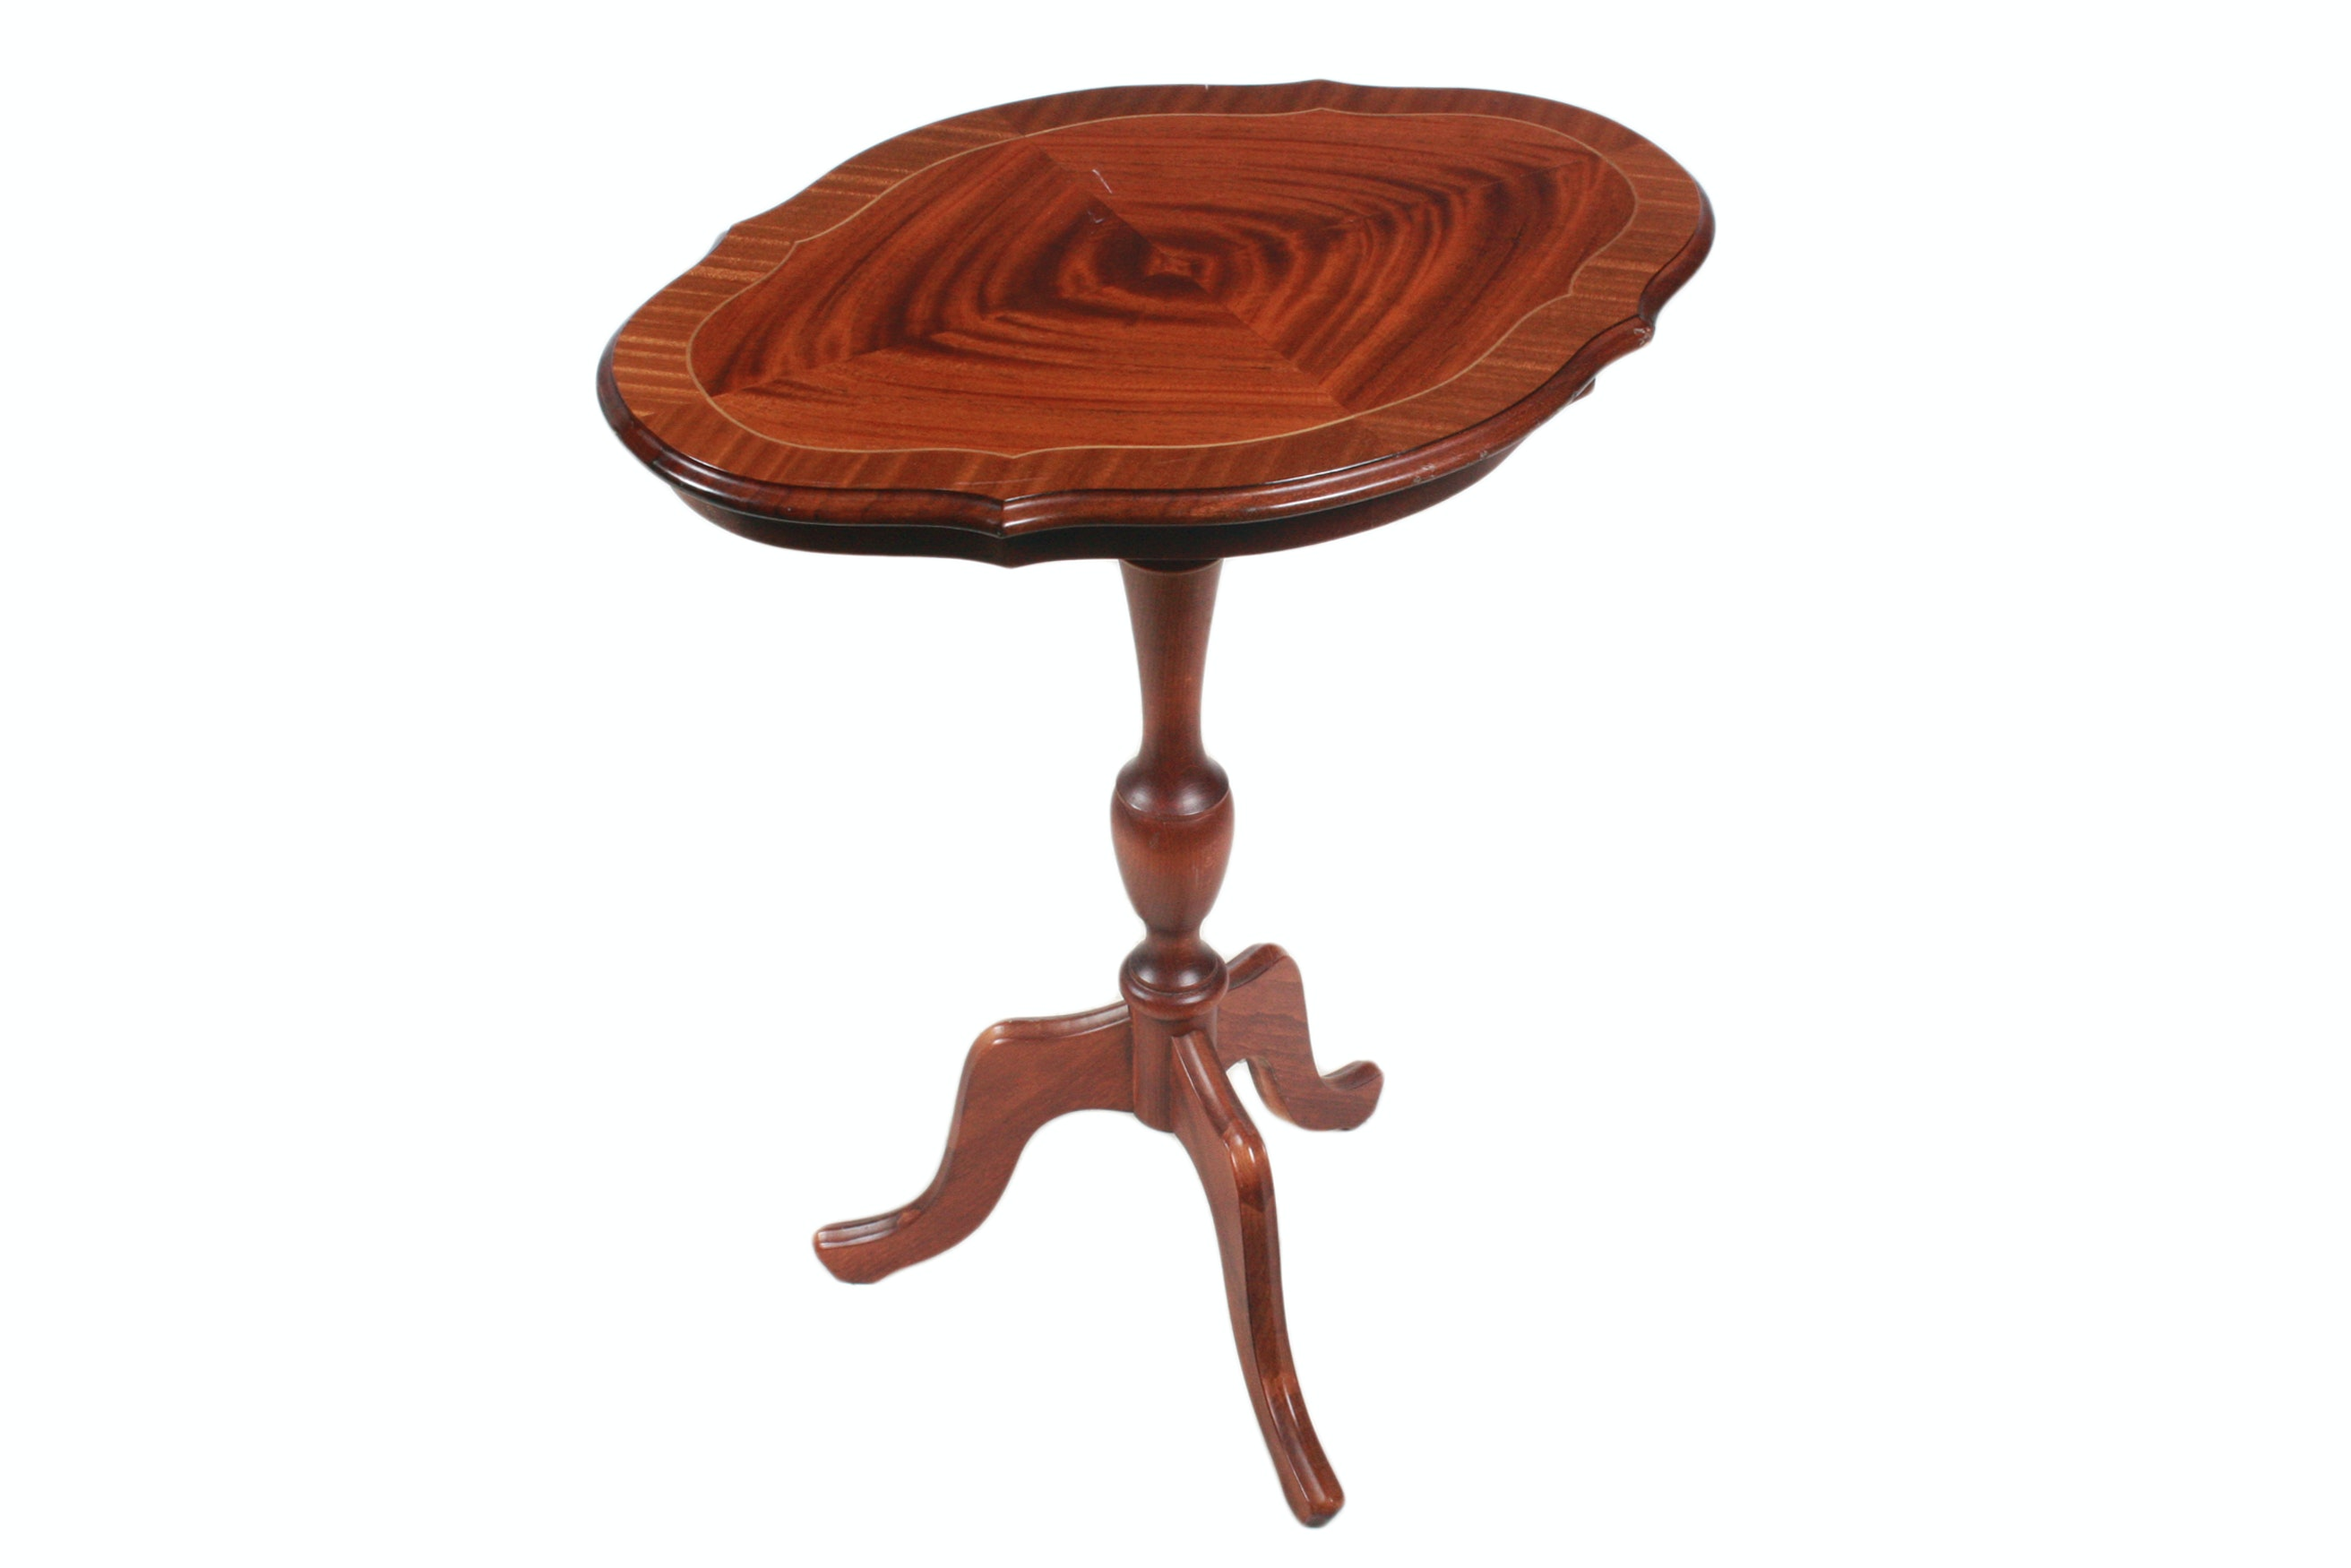 Vintage Mahogany Accent Table by Ryden Mobler